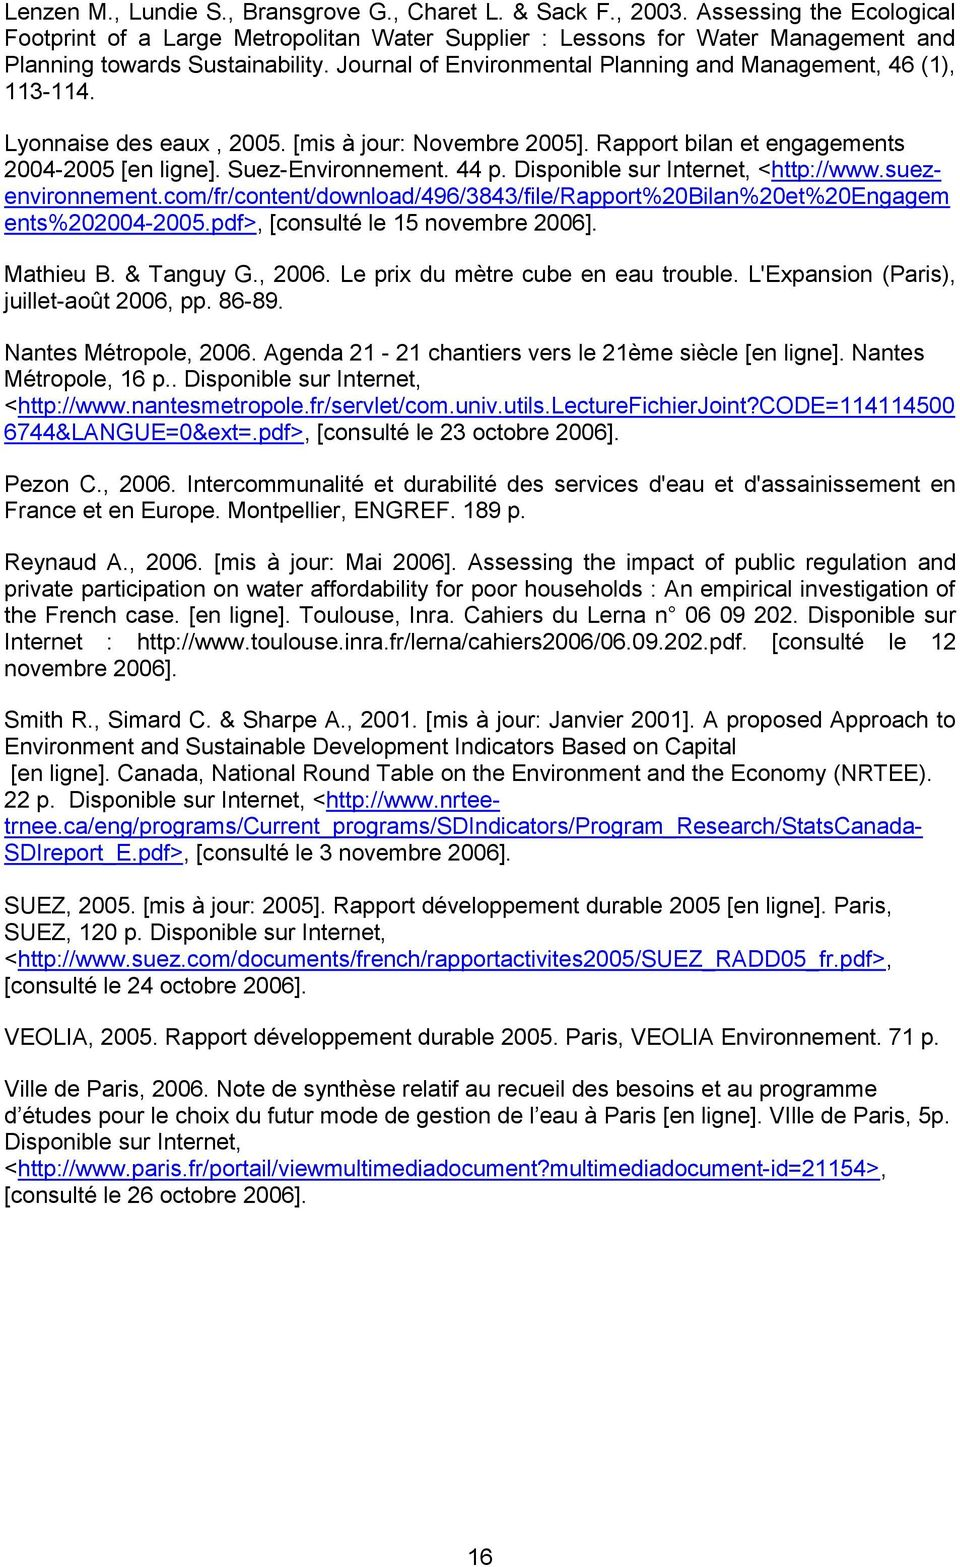 Journal of Environmental Planning and Management, 46 (1), 113-114. Lyonnaise des eaux, 2005. [mis à jour: Novembre 2005]. Rapport bilan et engagements 2004-2005 [en ligne]. Suez-Environnement. 44 p.